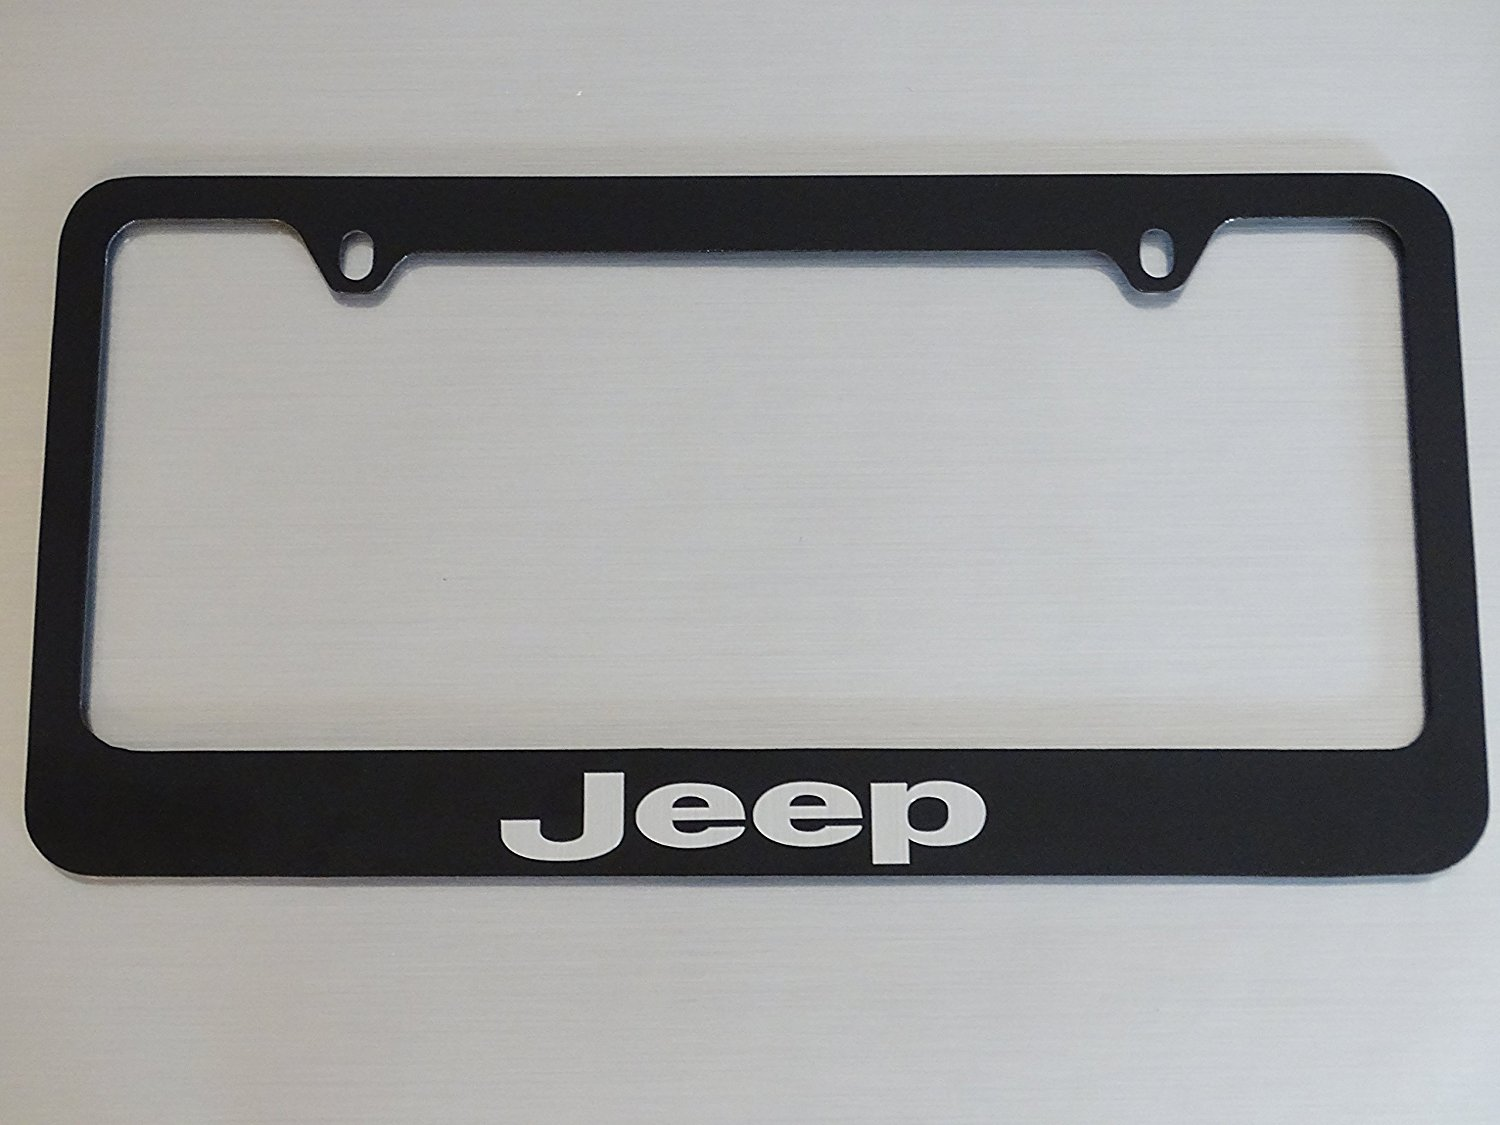 Jeep license plate frame, Glossy Black, Brushed aluminum text